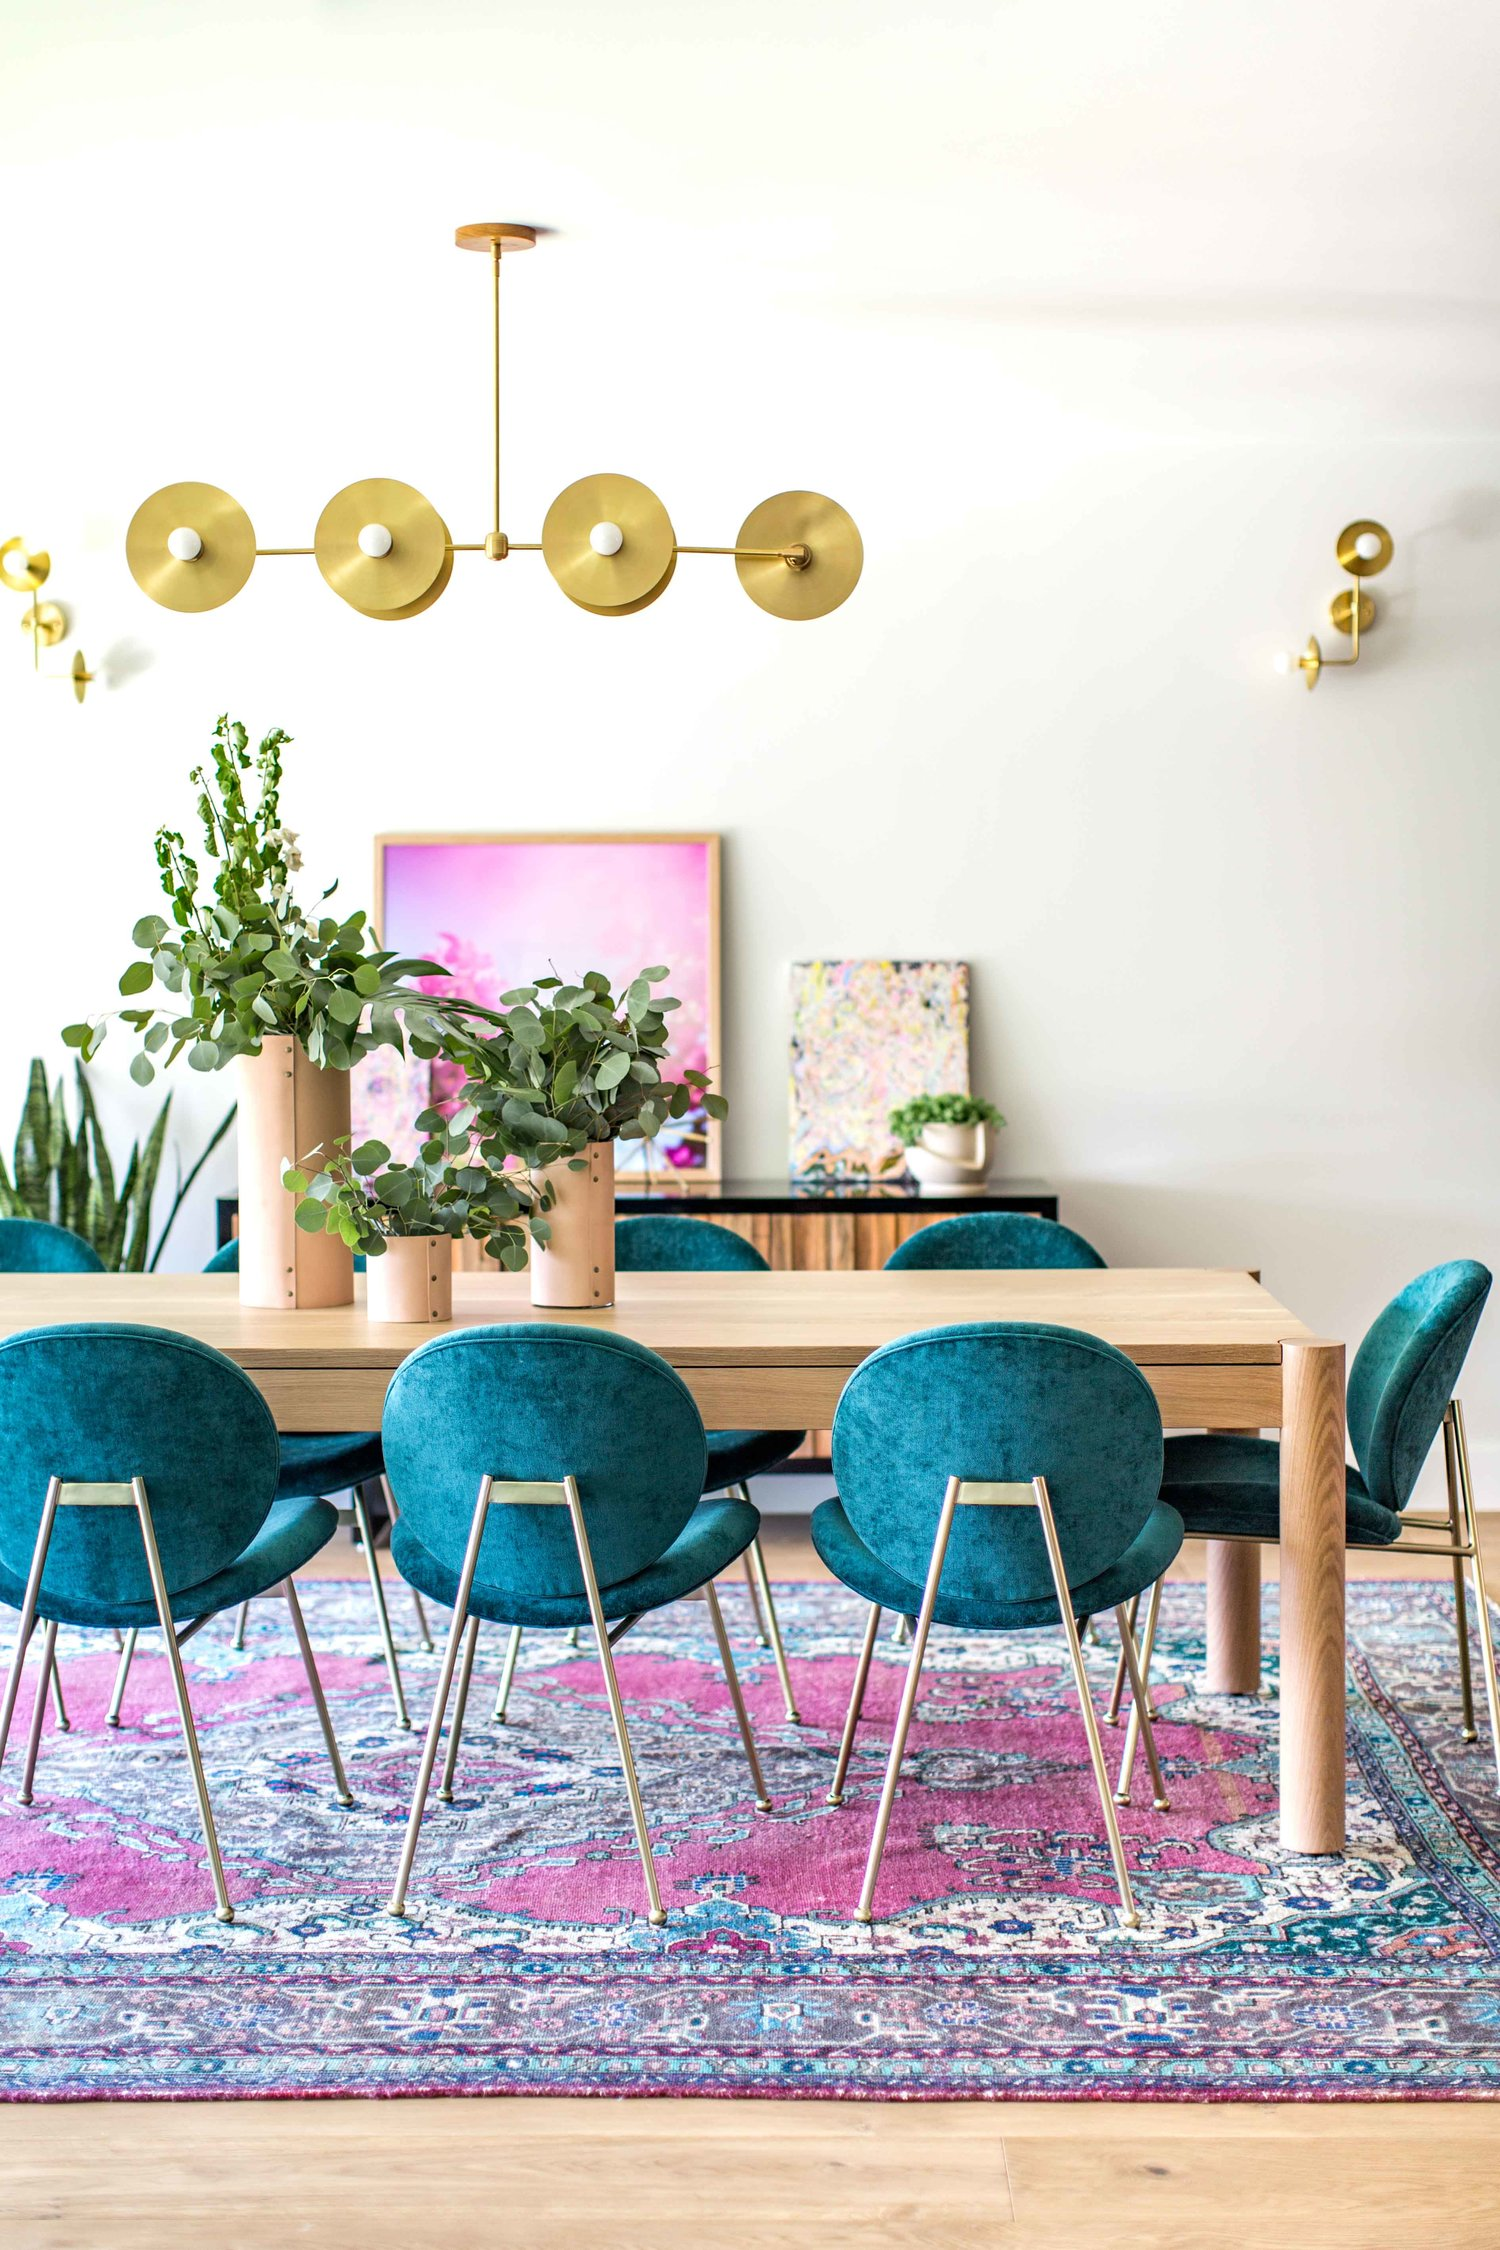 Colorful Eclectic Dining Room | Teal Velvet Chairs | Pink Teal Boho Oriental Rug | Velvet Dining Room Chairs | Velvet Dining Chairs | Dining Room Inspiration | Dining Room Ideas | Dining Room Decor | Gold Chandelier Light Fixture